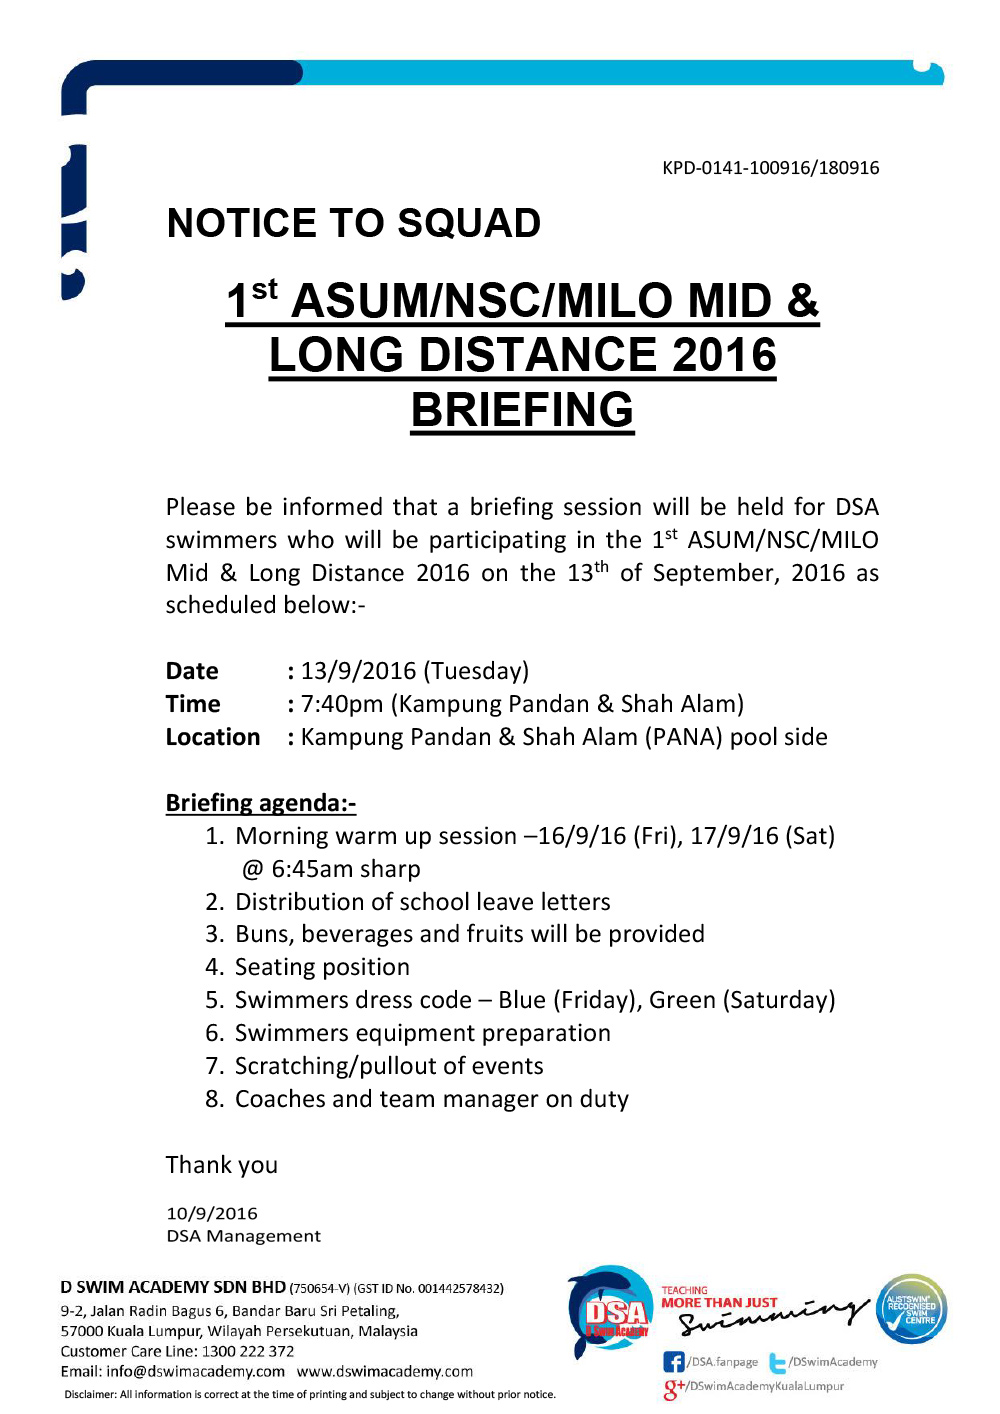 Mid-&-Long-Distance-2016---Team-Briefing-Notice